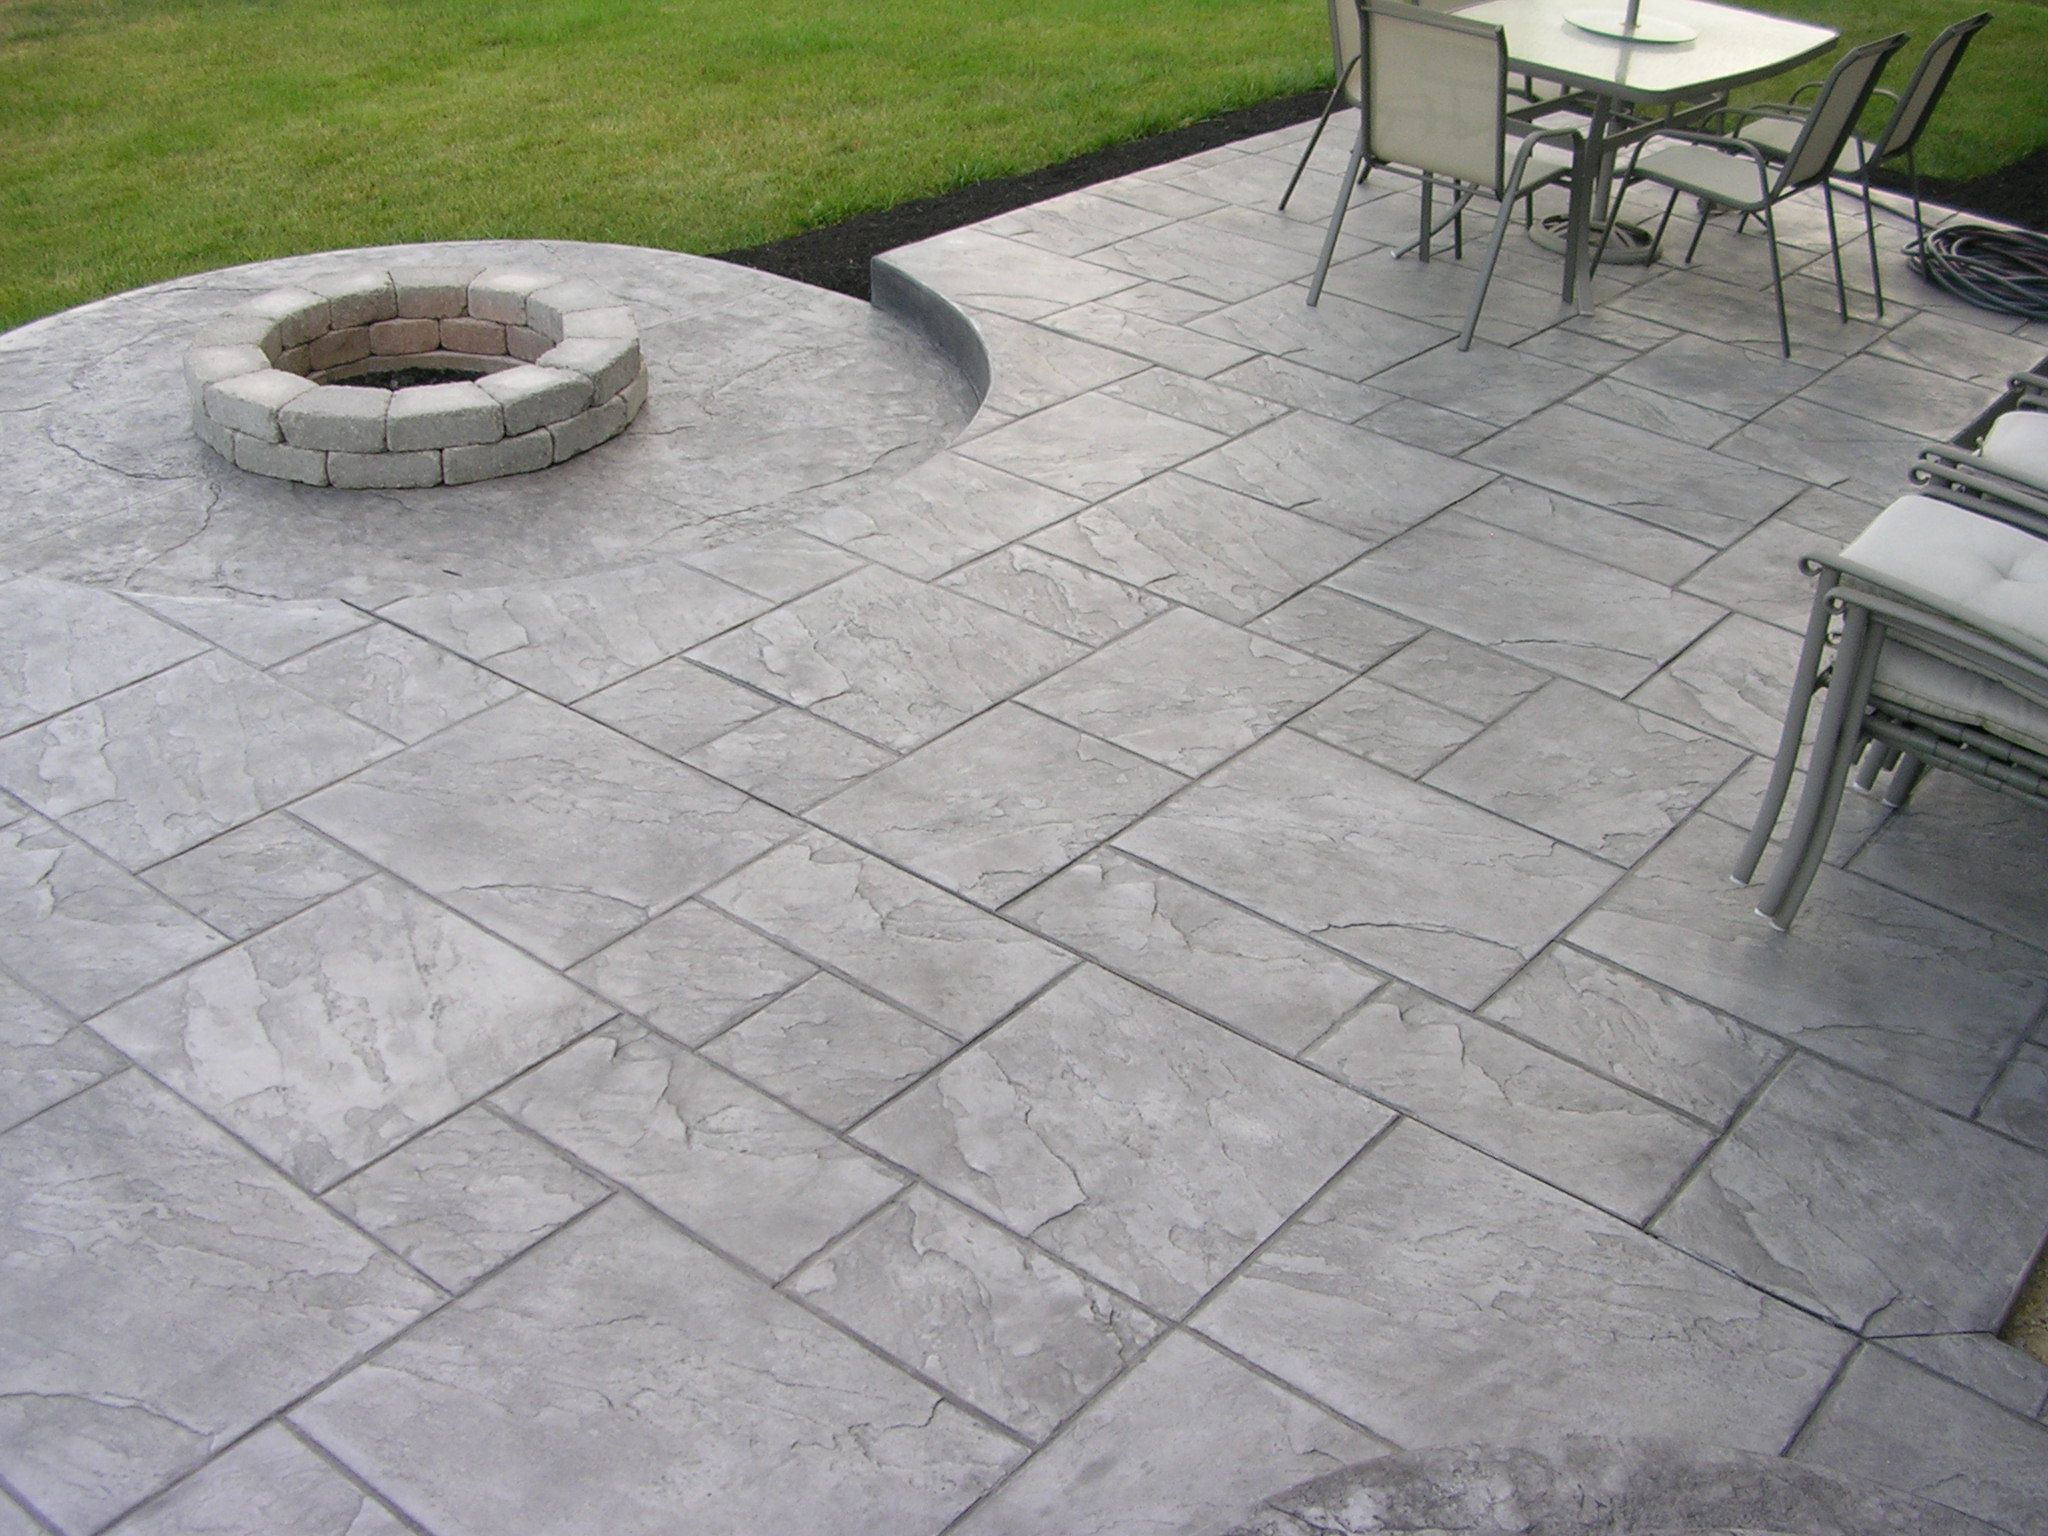 a patio pavers co paver dischullo patios pcok concrete